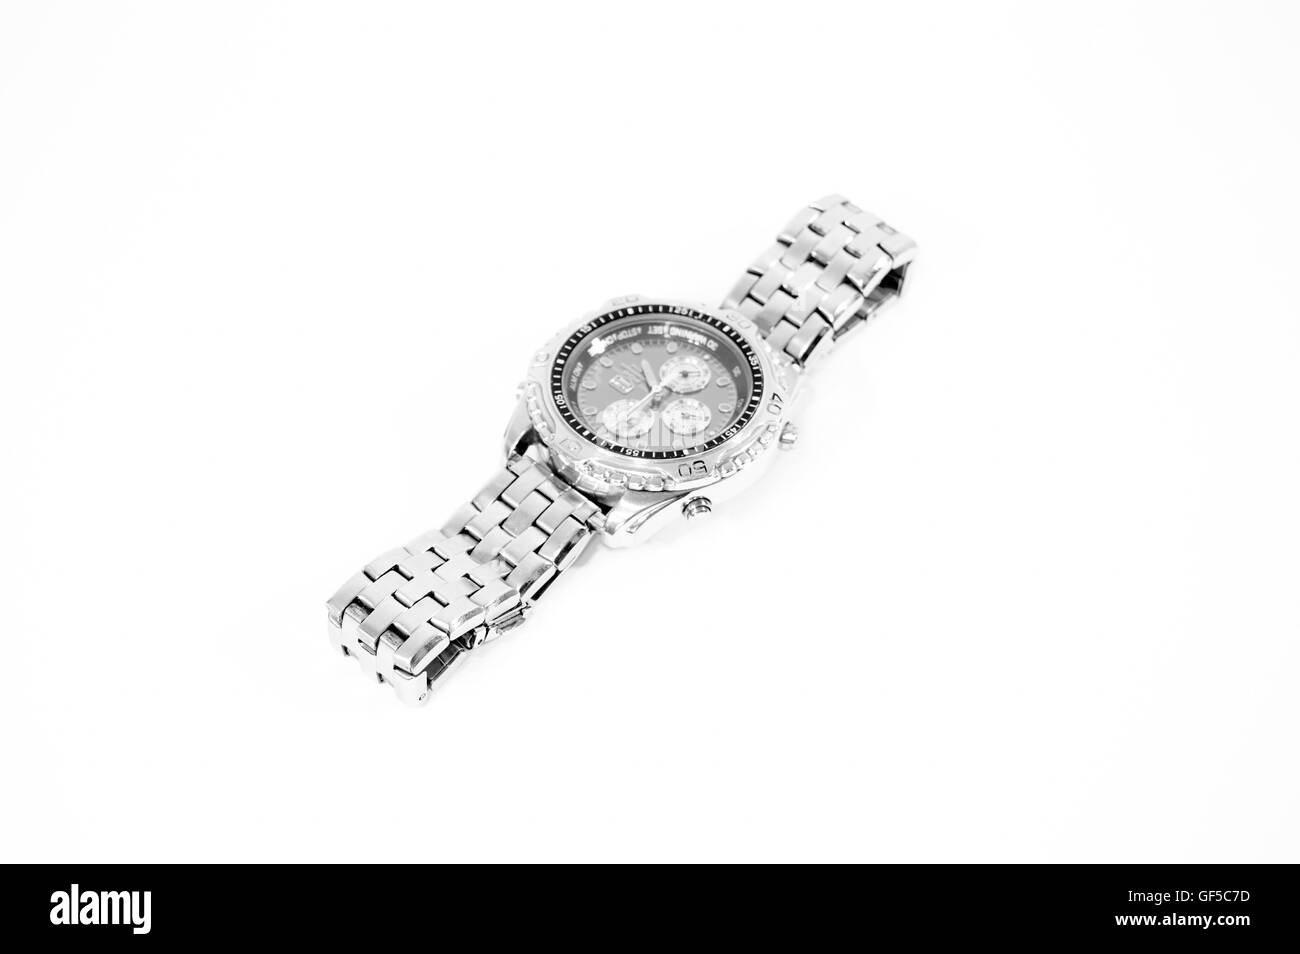 A silver and black watch with four buttons and three dials on a white background. - Stock Image